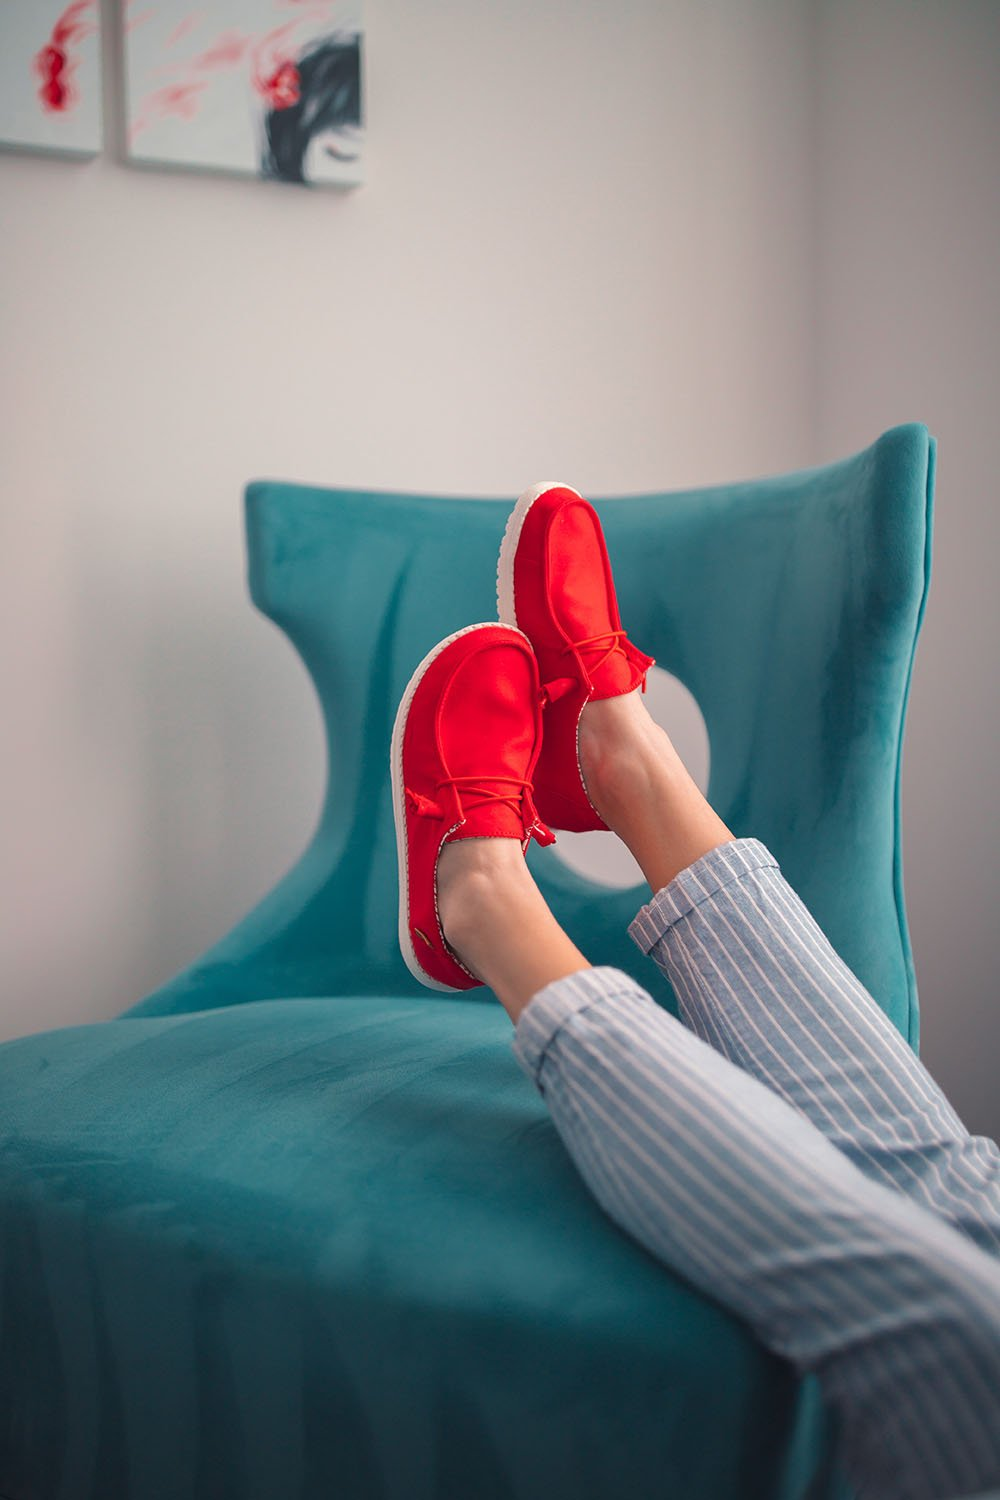 Legs kicked back wearing red Hey Dude Wendy casual shoes.